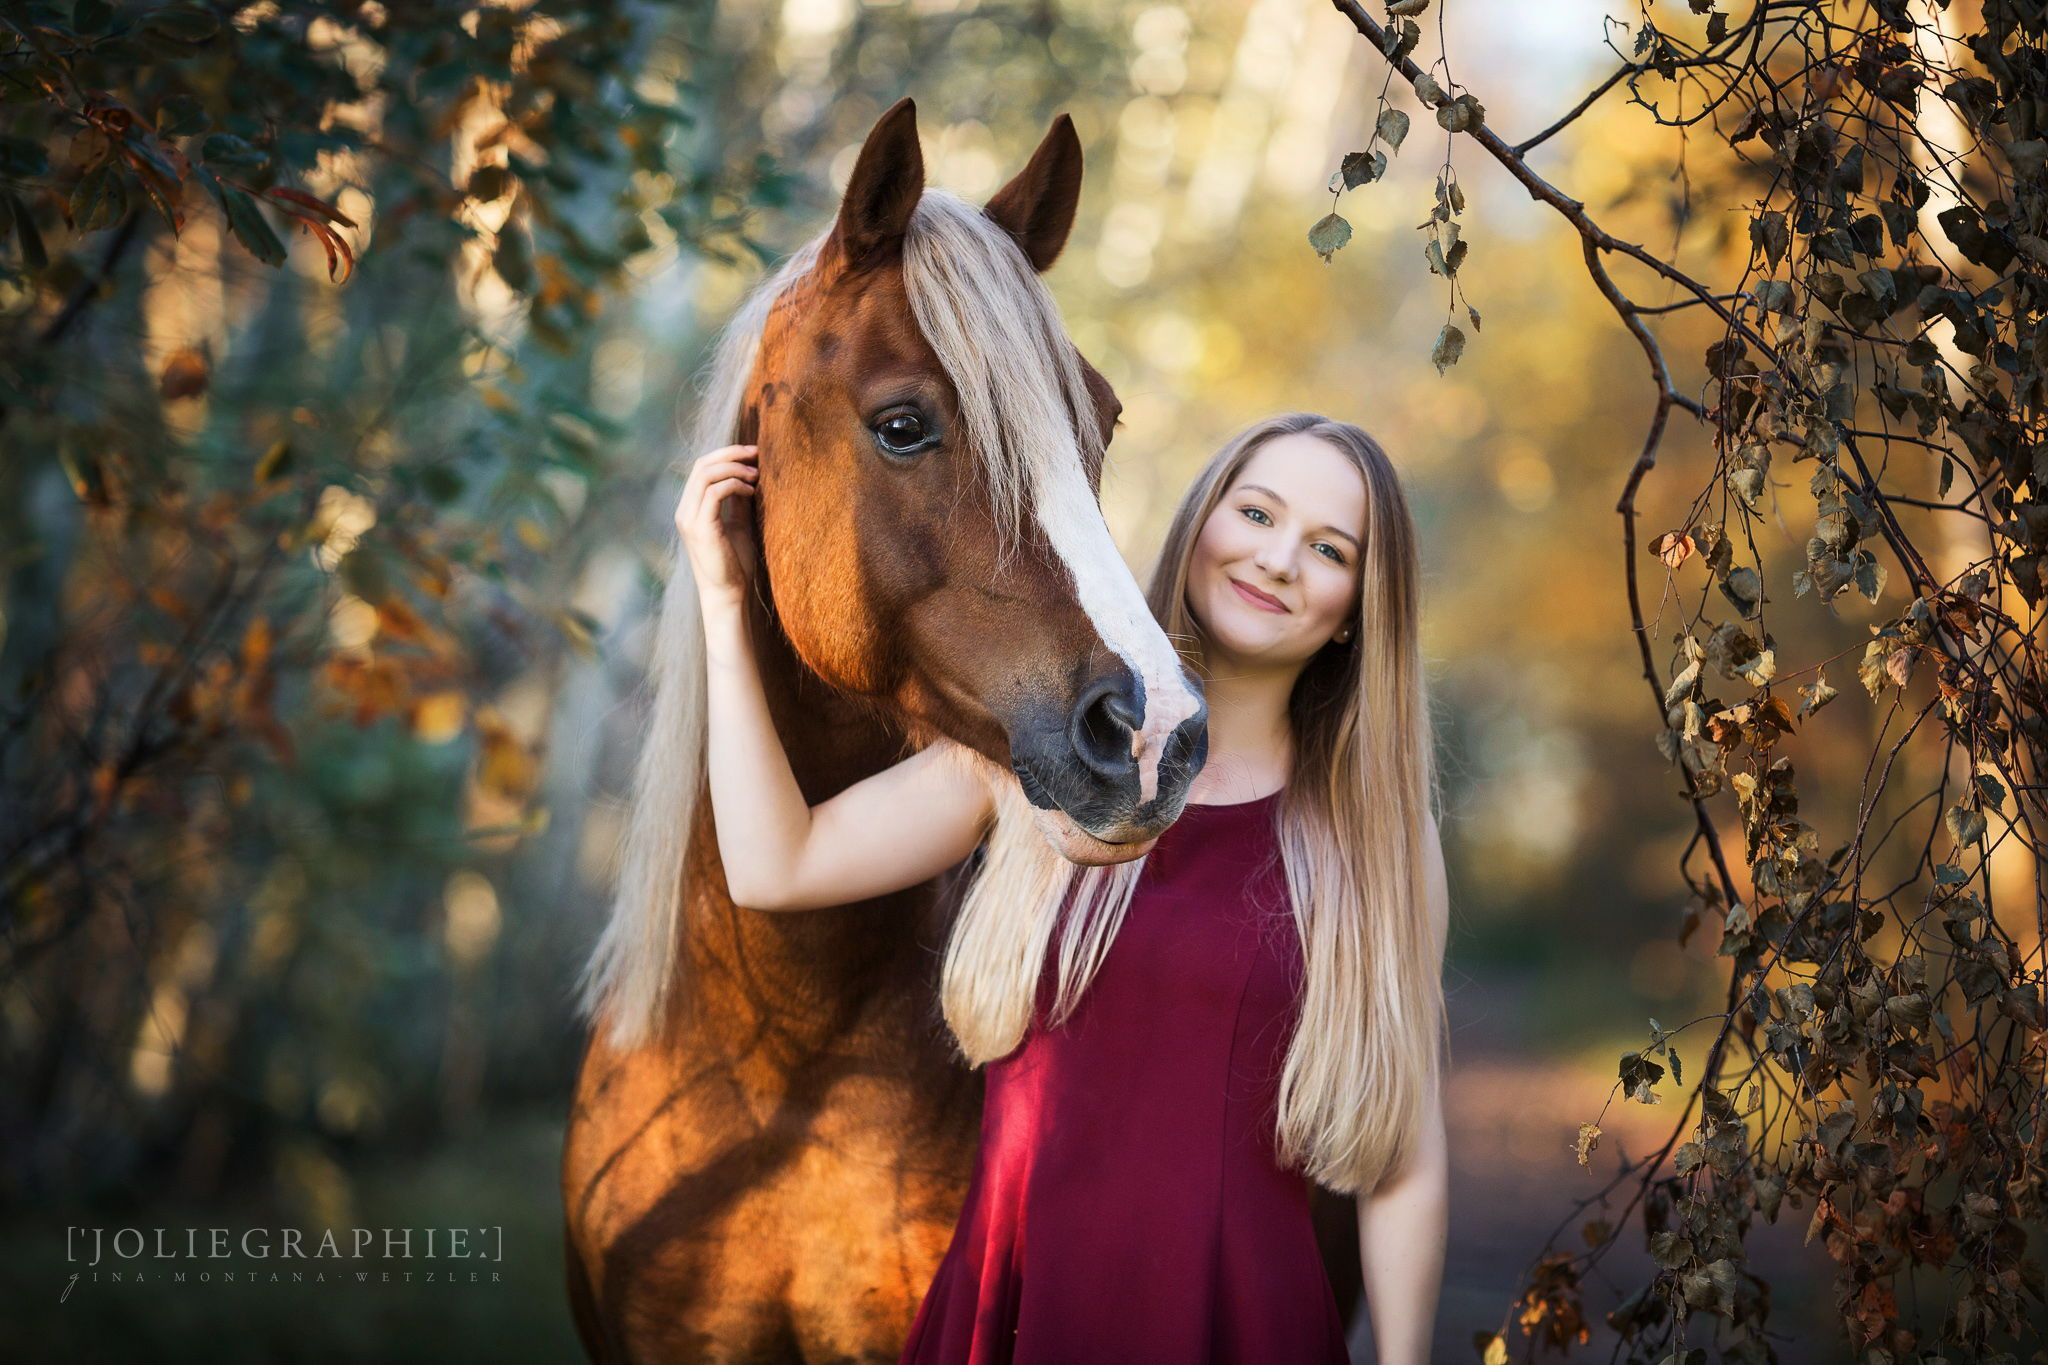 Frau und Pferd im Wald / Woman and Horse in the forest